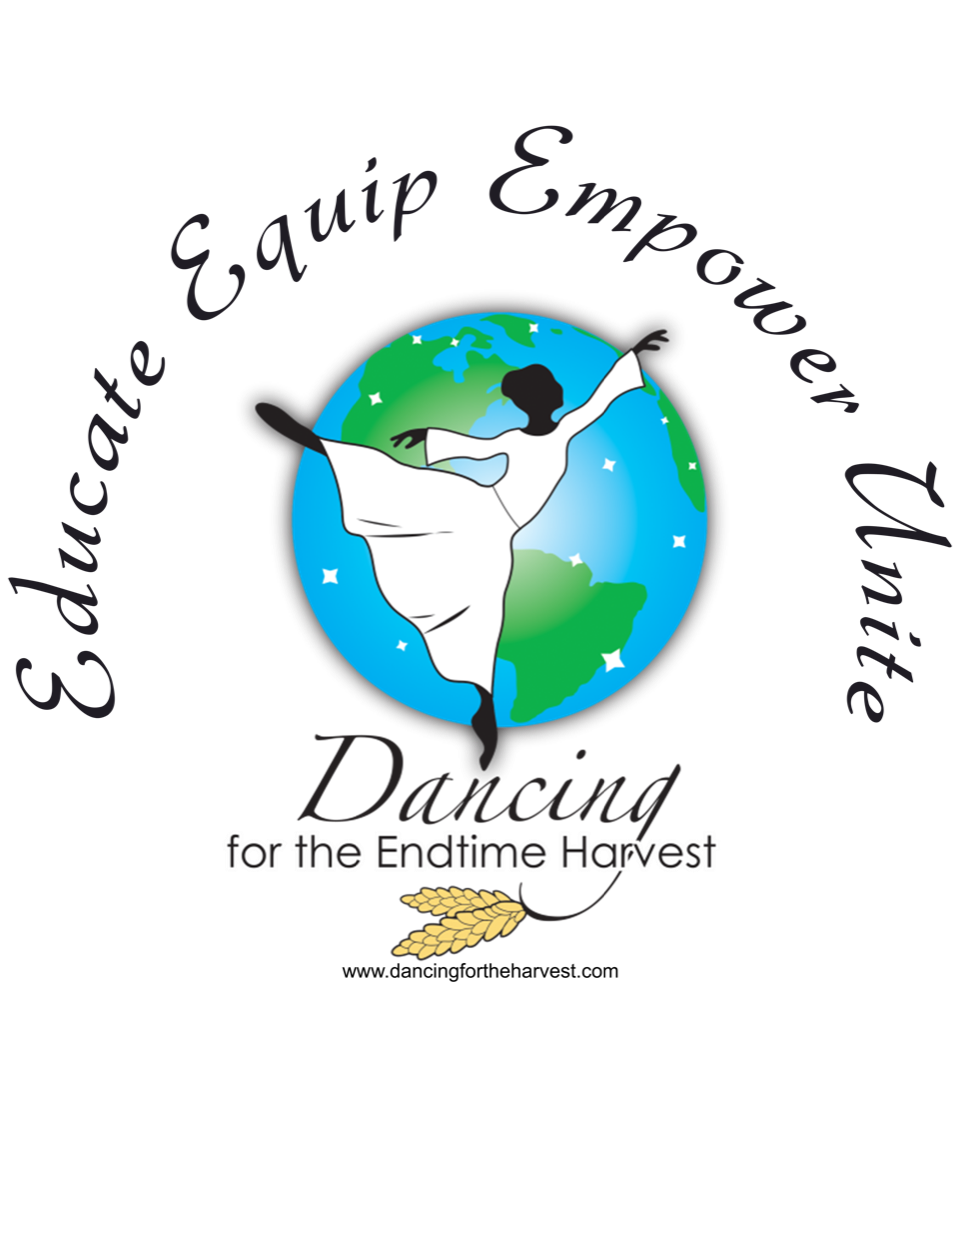 Dancing for the Endtime Harvest logo